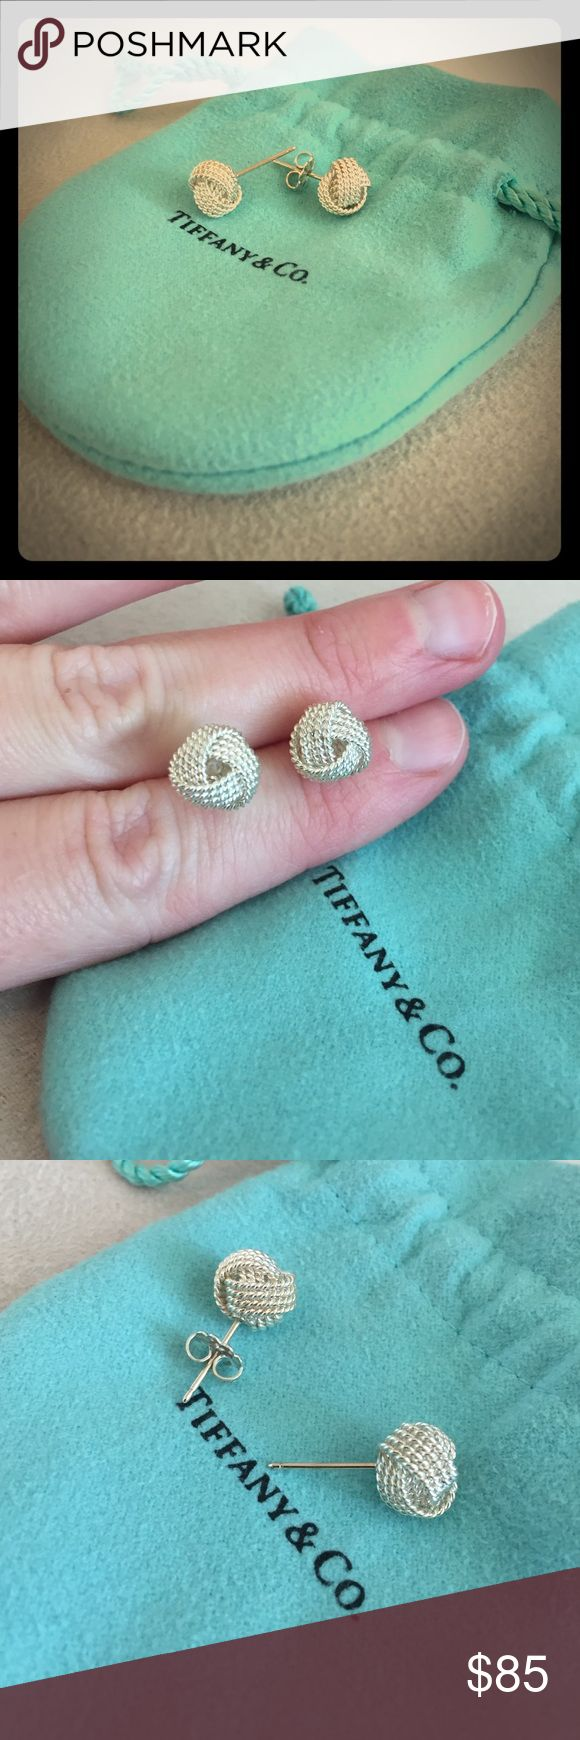 Tiffany Twist Knot Earrings in Sterling Silver Authentic Tiffany twist knot earrings in sterling silver. For pierced ears. Comes with dust bag. Missing one earring back. Otherwise, great condition. Hardly worn. Tiffany & Co. Jewelry Earrings